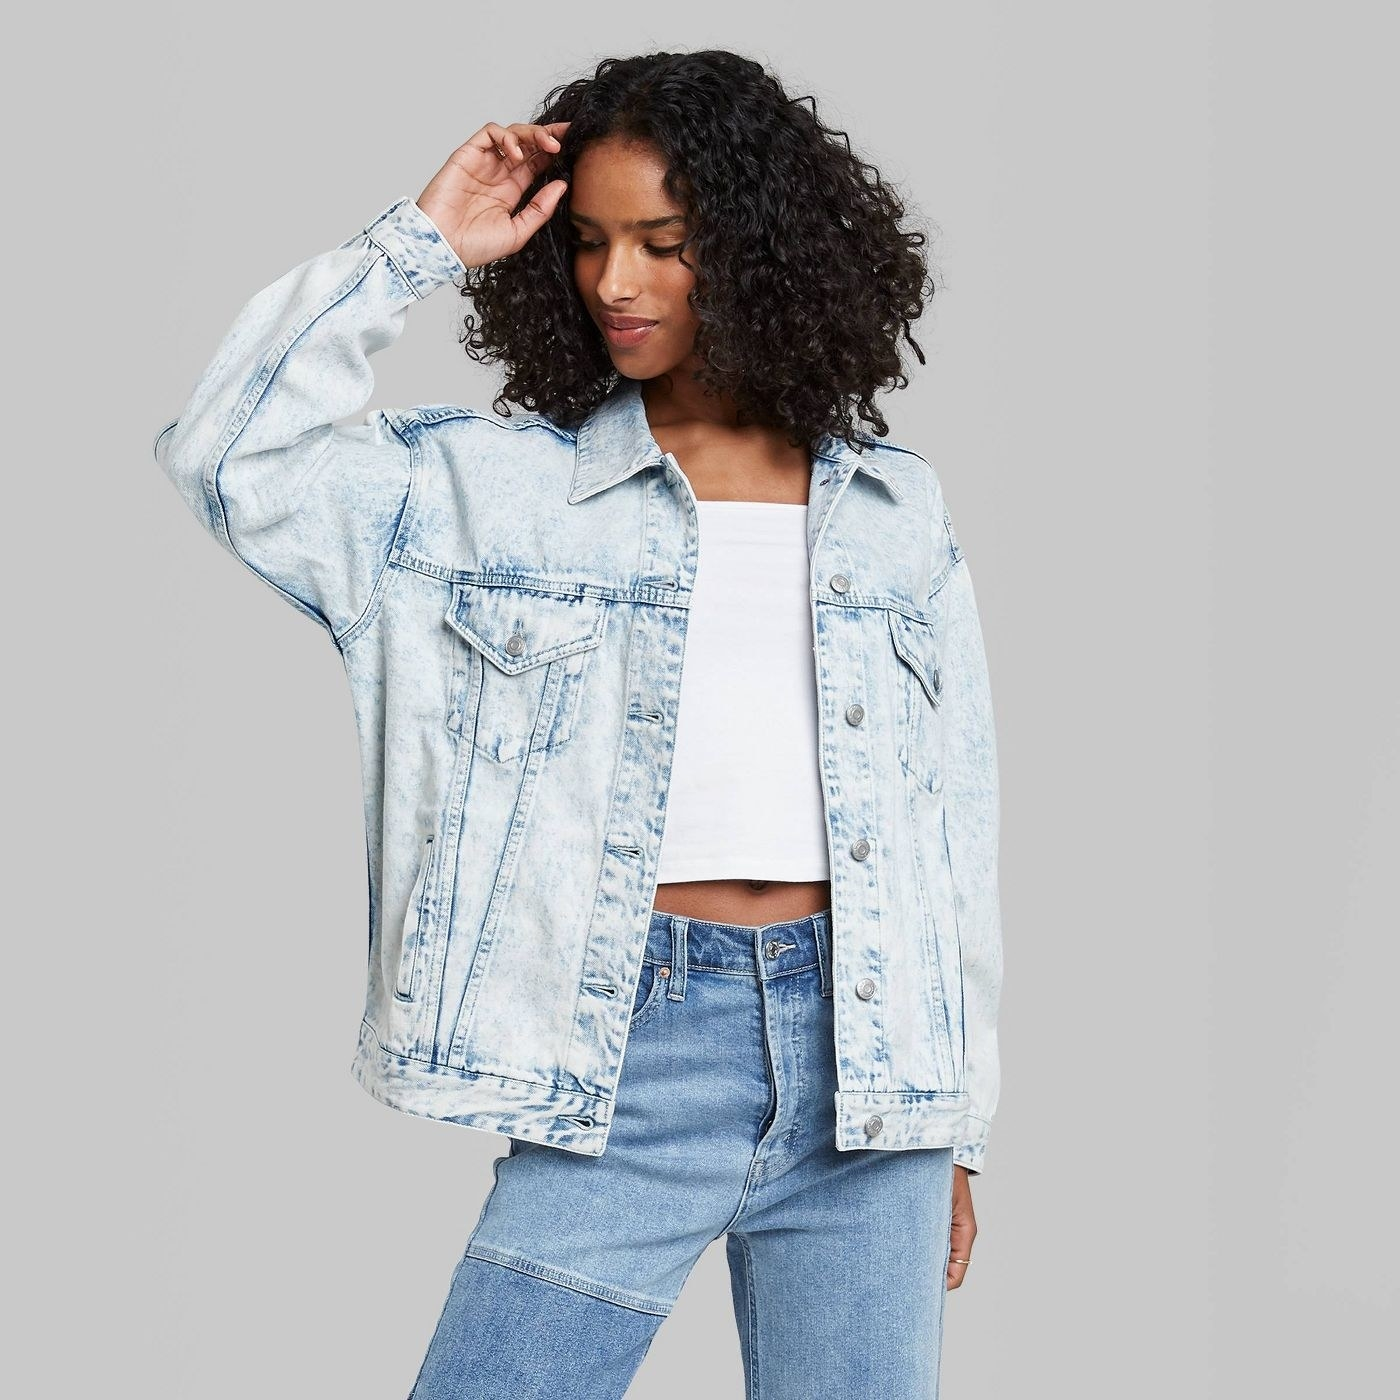 Model wearing light wash jean jacket with pockets on the bust area